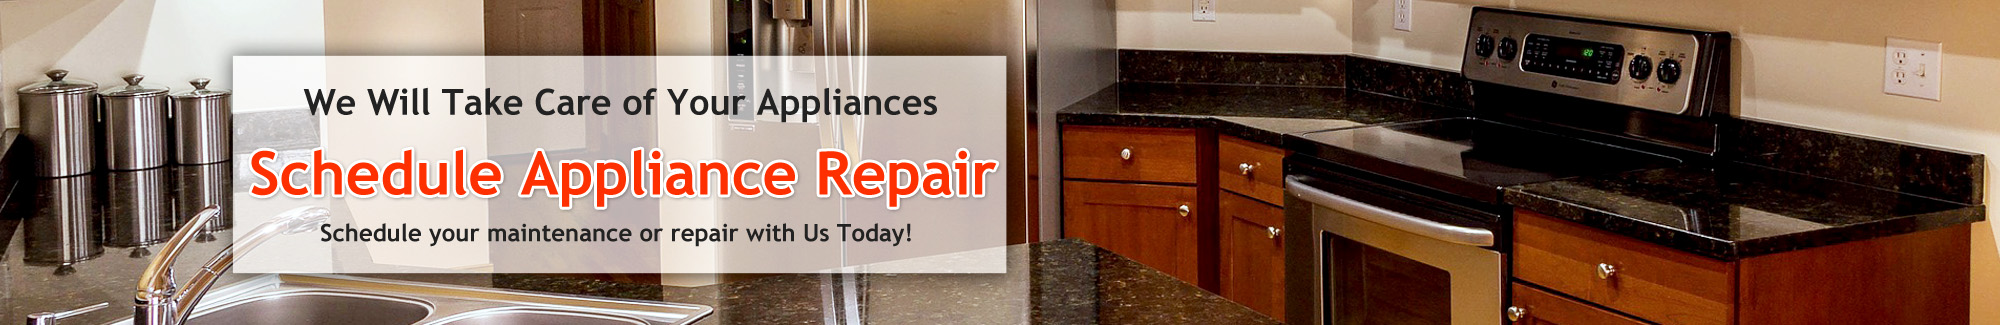 Let Appliance and Air Care Experts handle your Air Conditioner maintenance in Dallas TX.